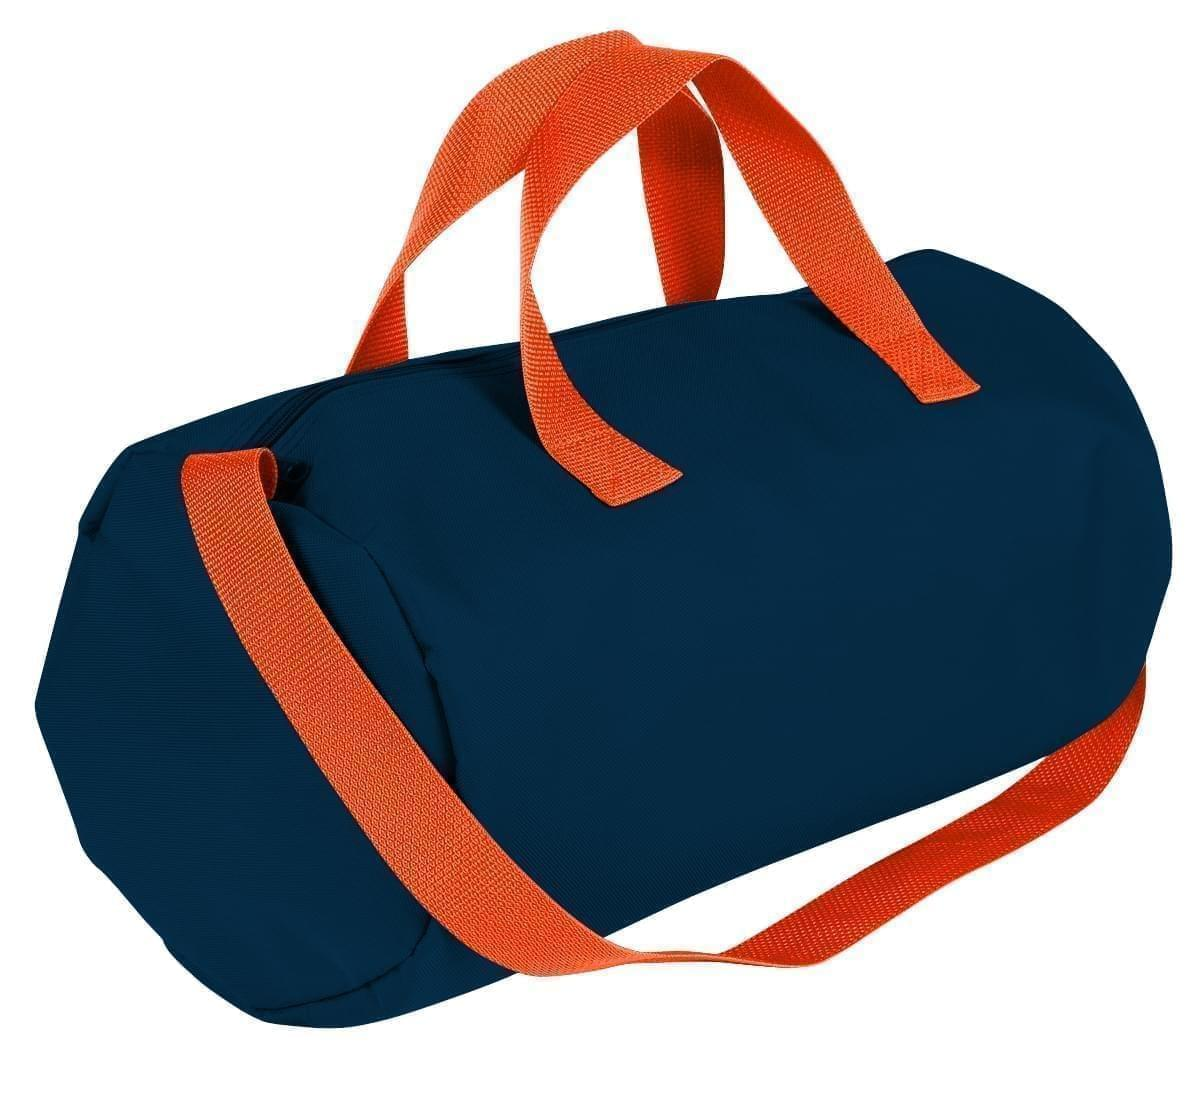 USA Made Nylon Poly Gym Roll Bags, Navy-Orange, ROCX31AAW0